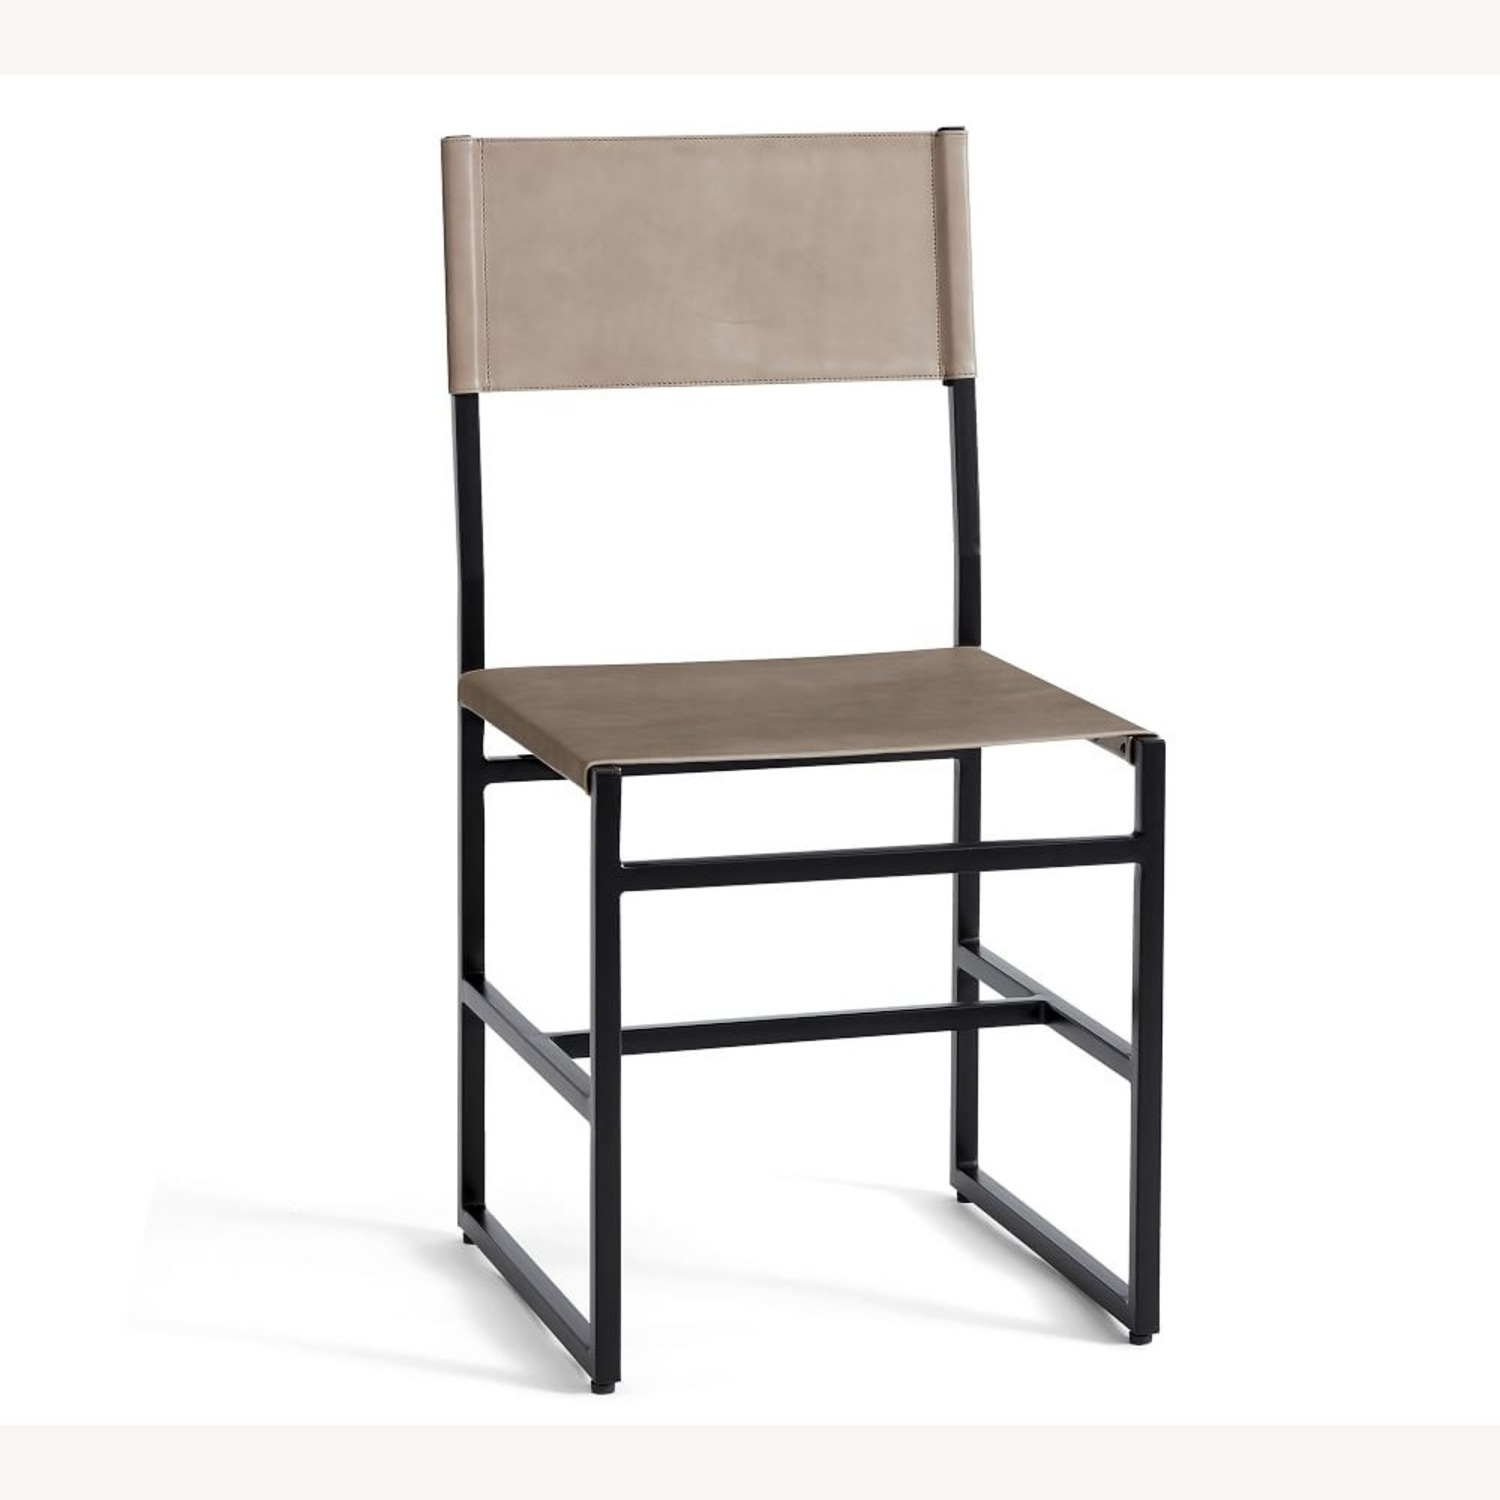 Pottery Barn Hardy Leather Dining Chair - image-1